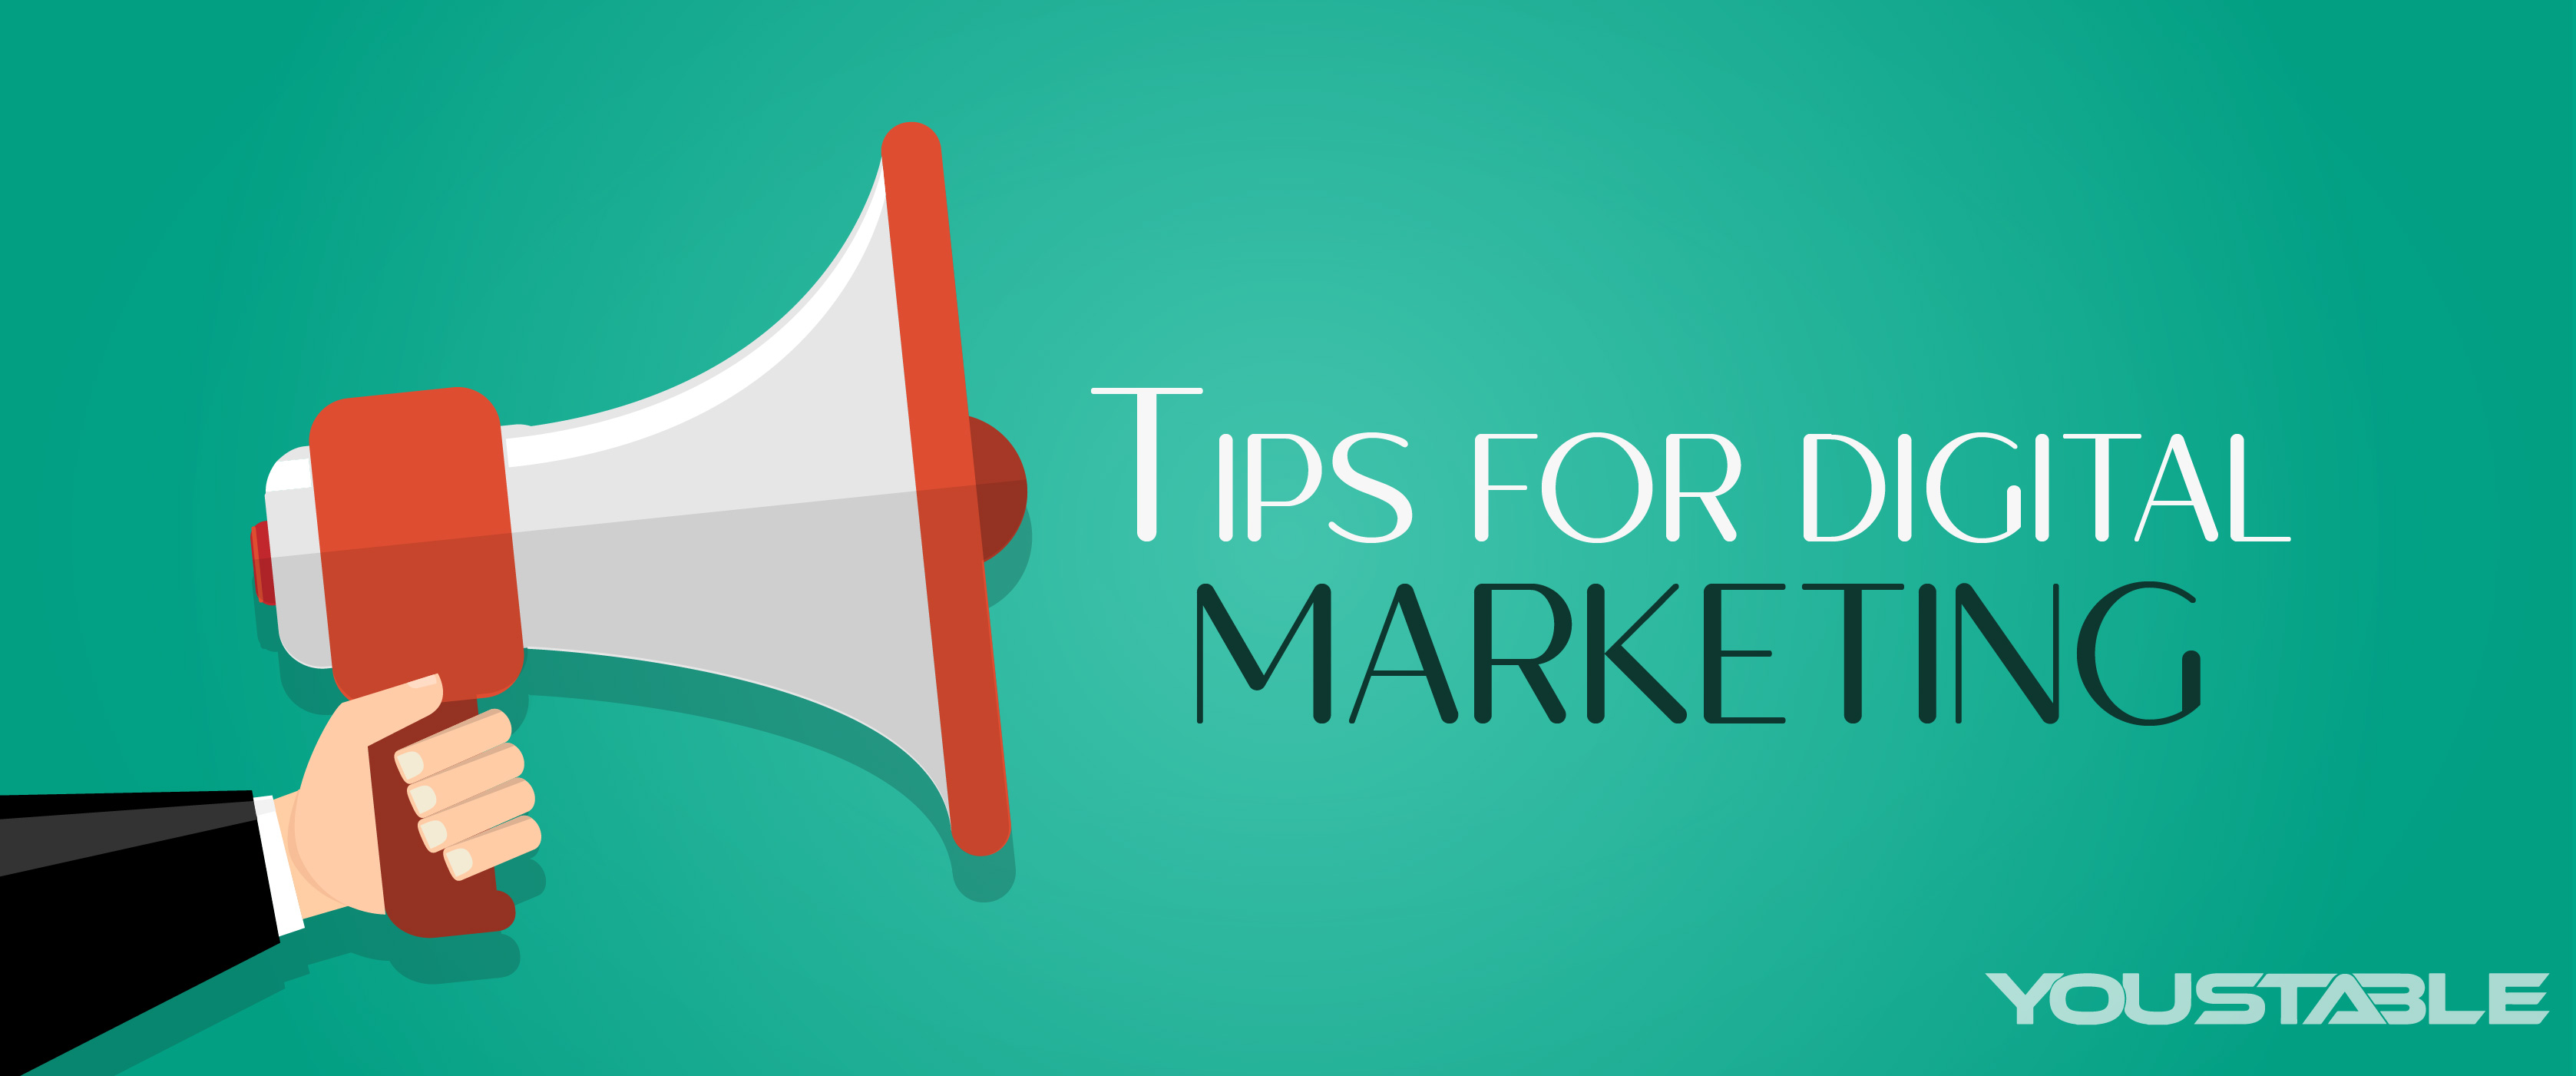 Top 5 Tips For Your Digital Marketing Success